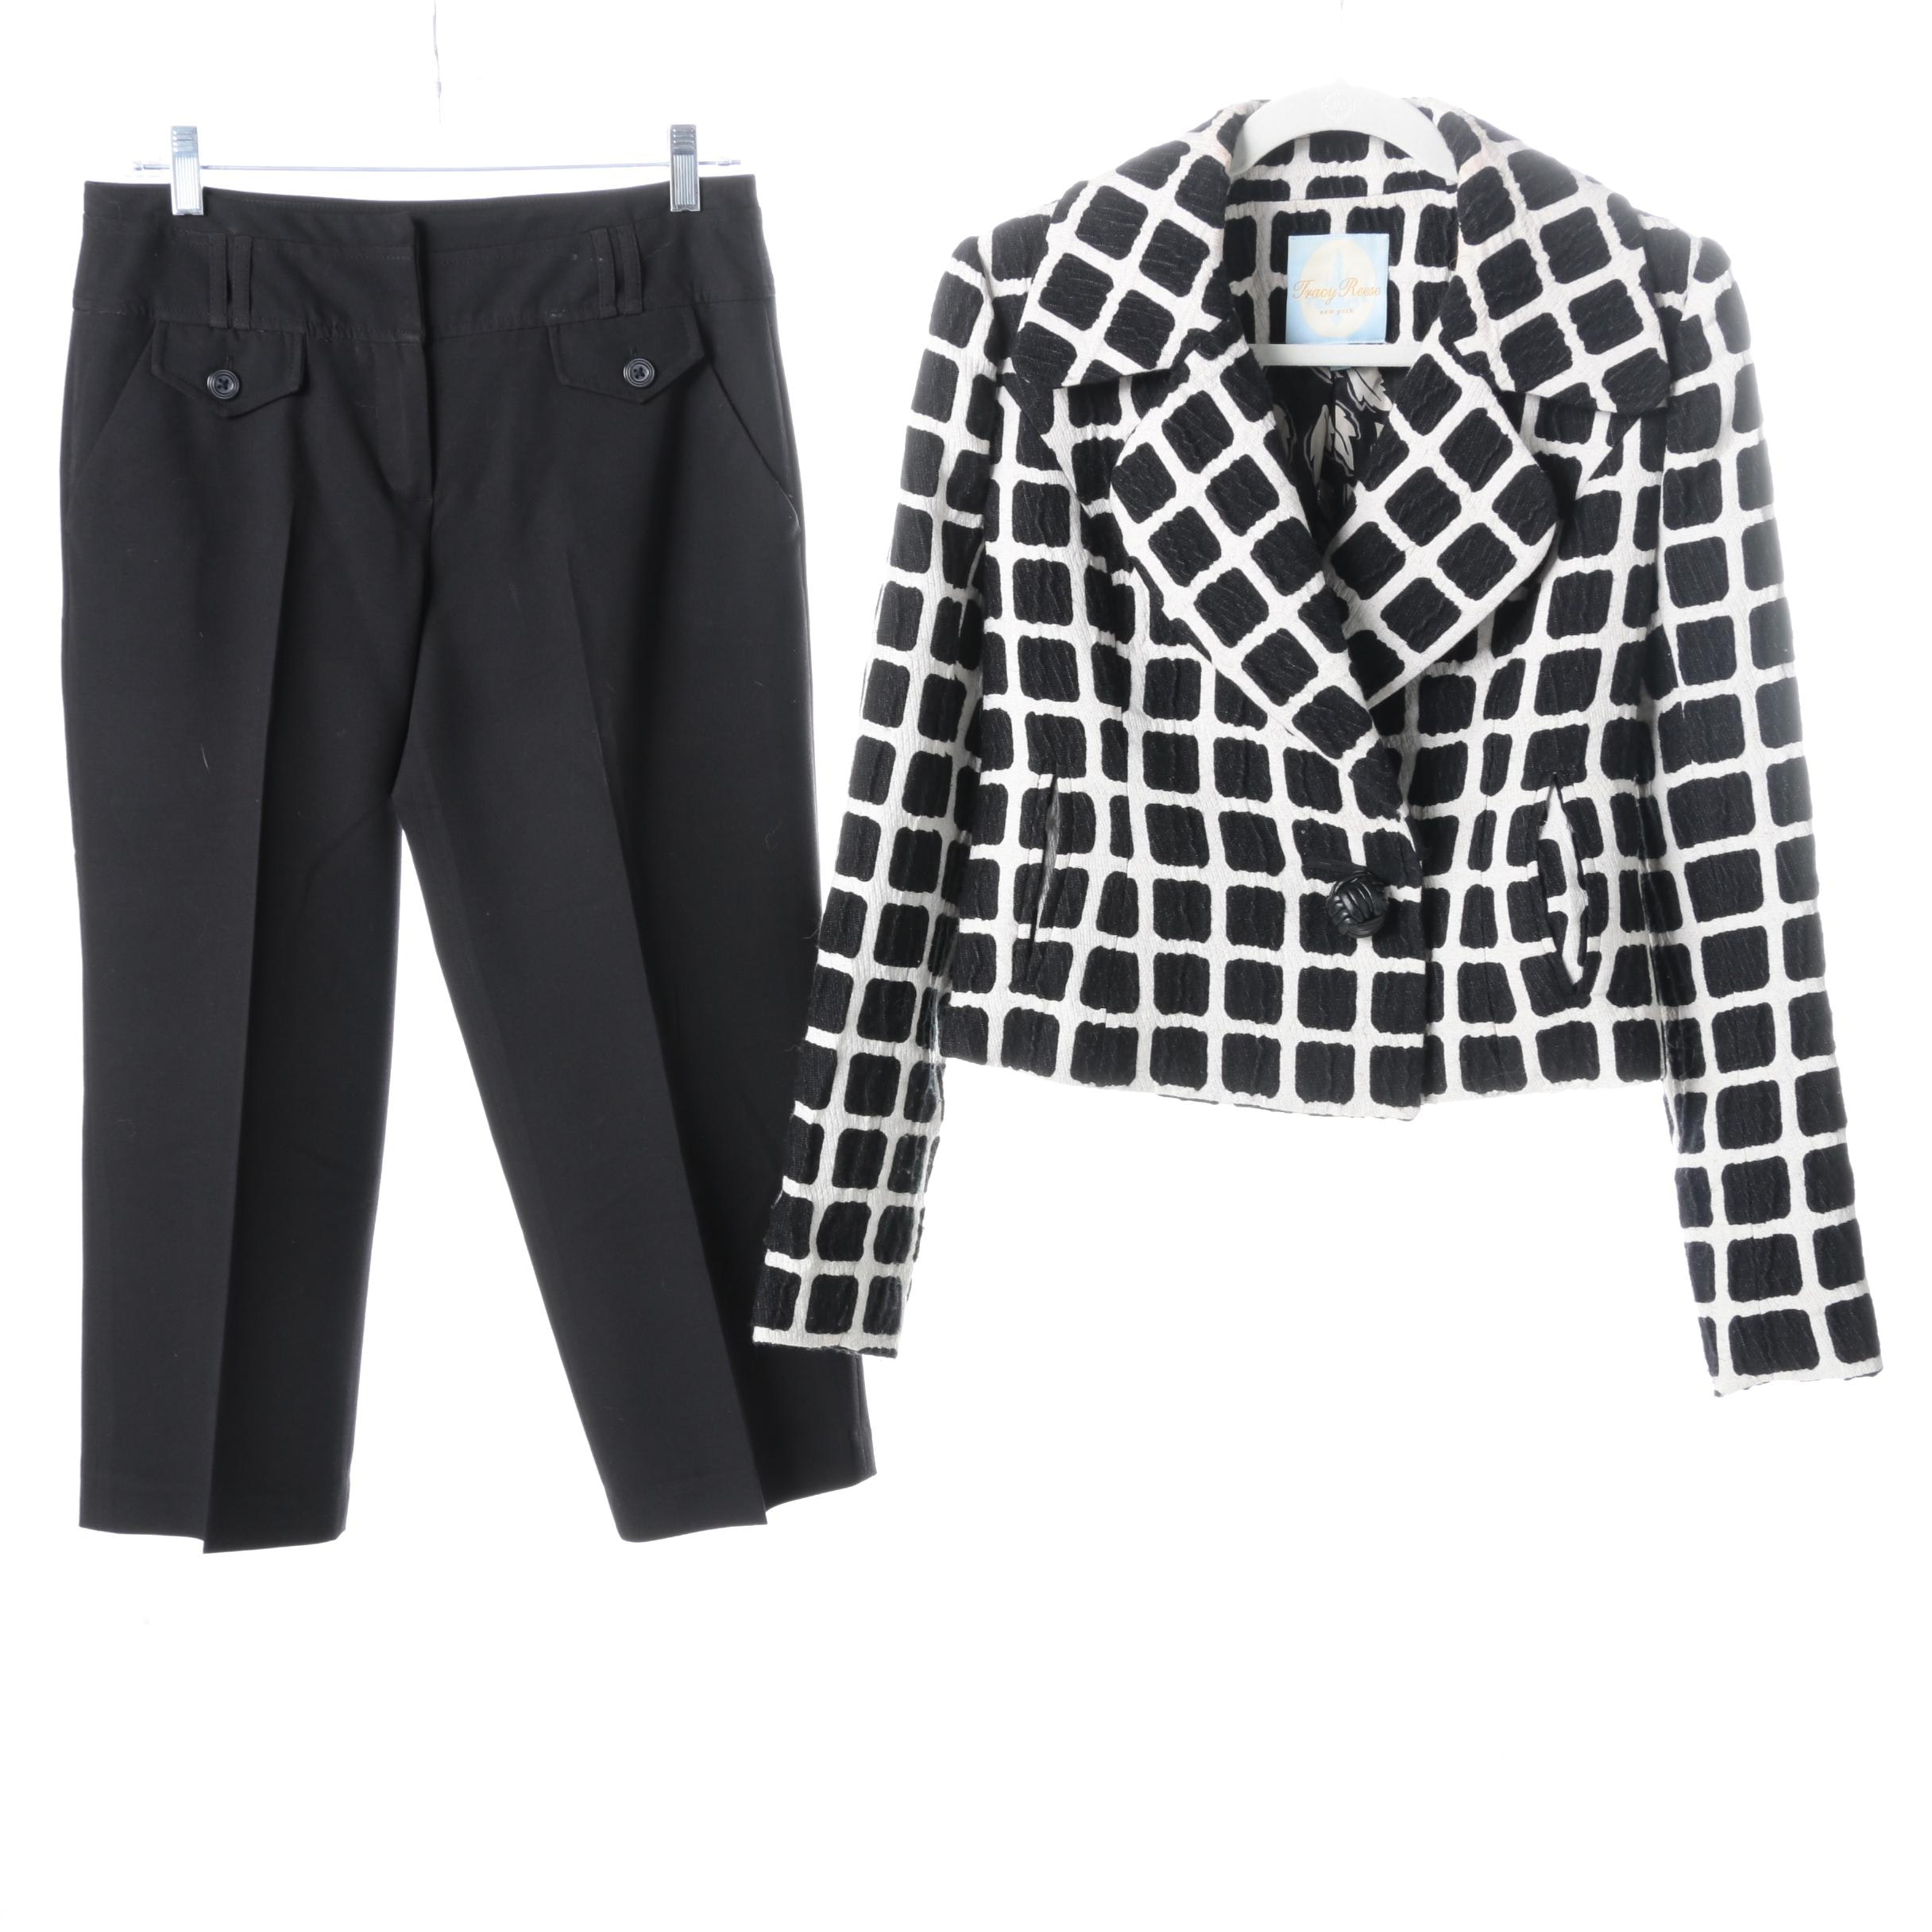 Women's Suit Separates Including Tracy Reese